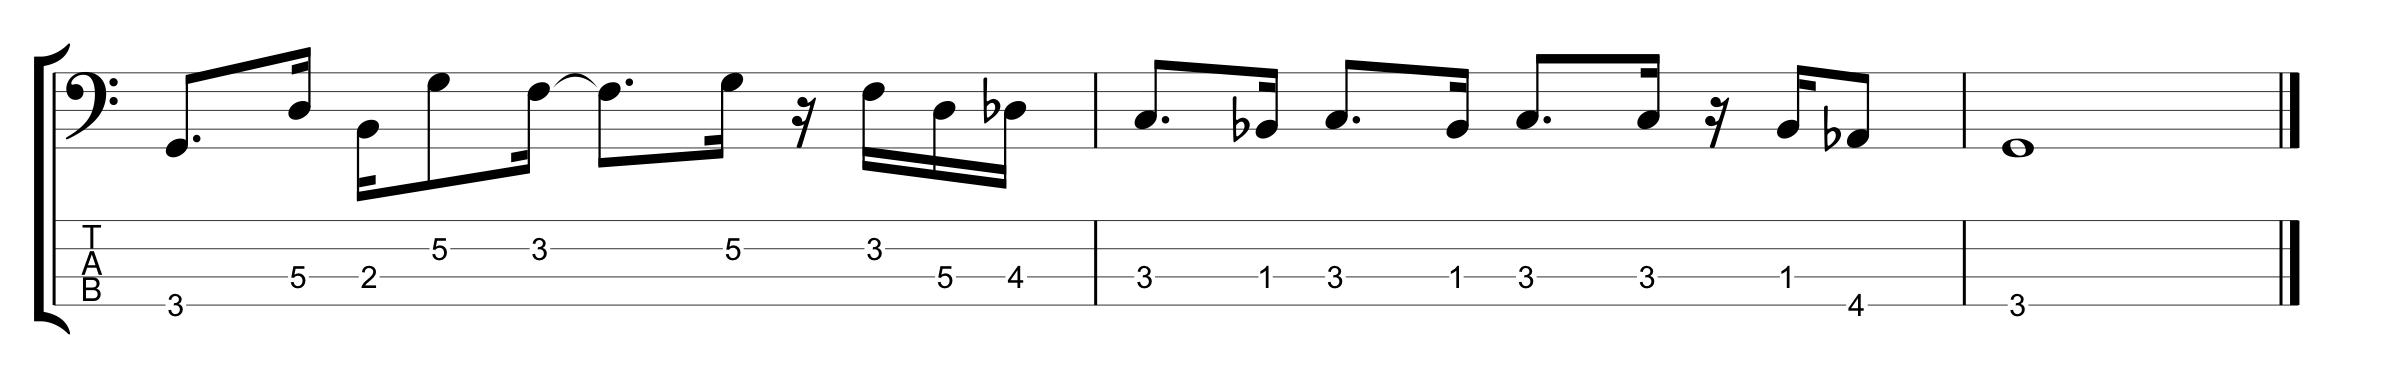 Outside Notes Example 3